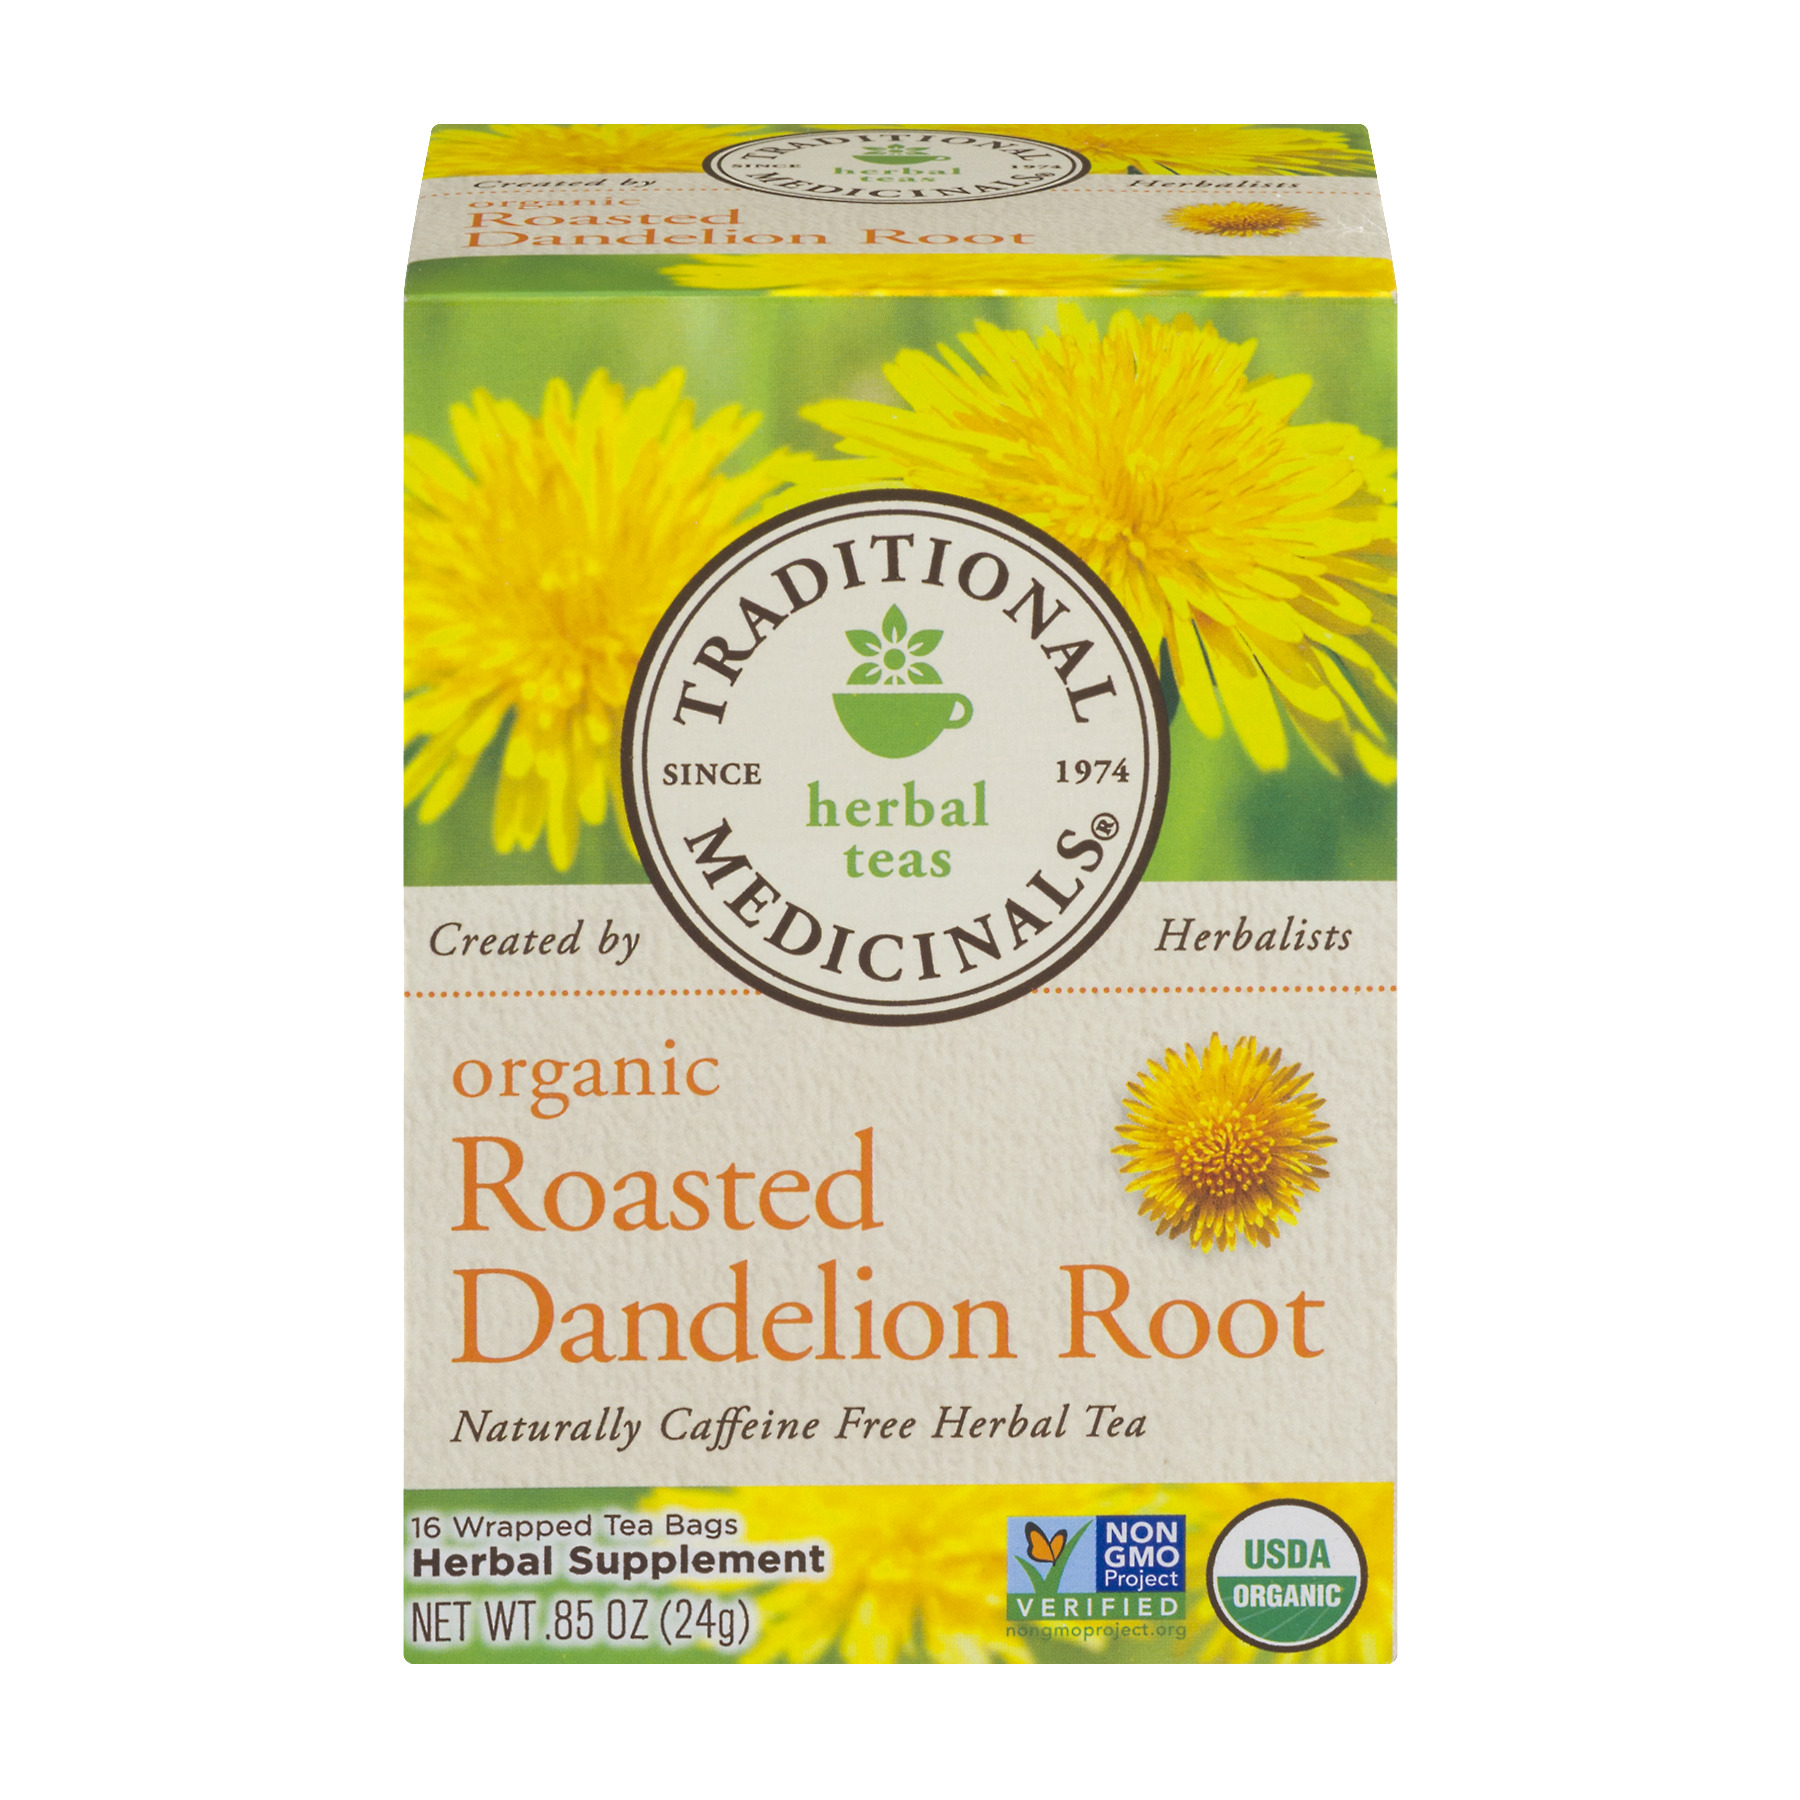 (6 Pack) TRADITIONAL MEDICINAL ROASTED DANDELION ROOT